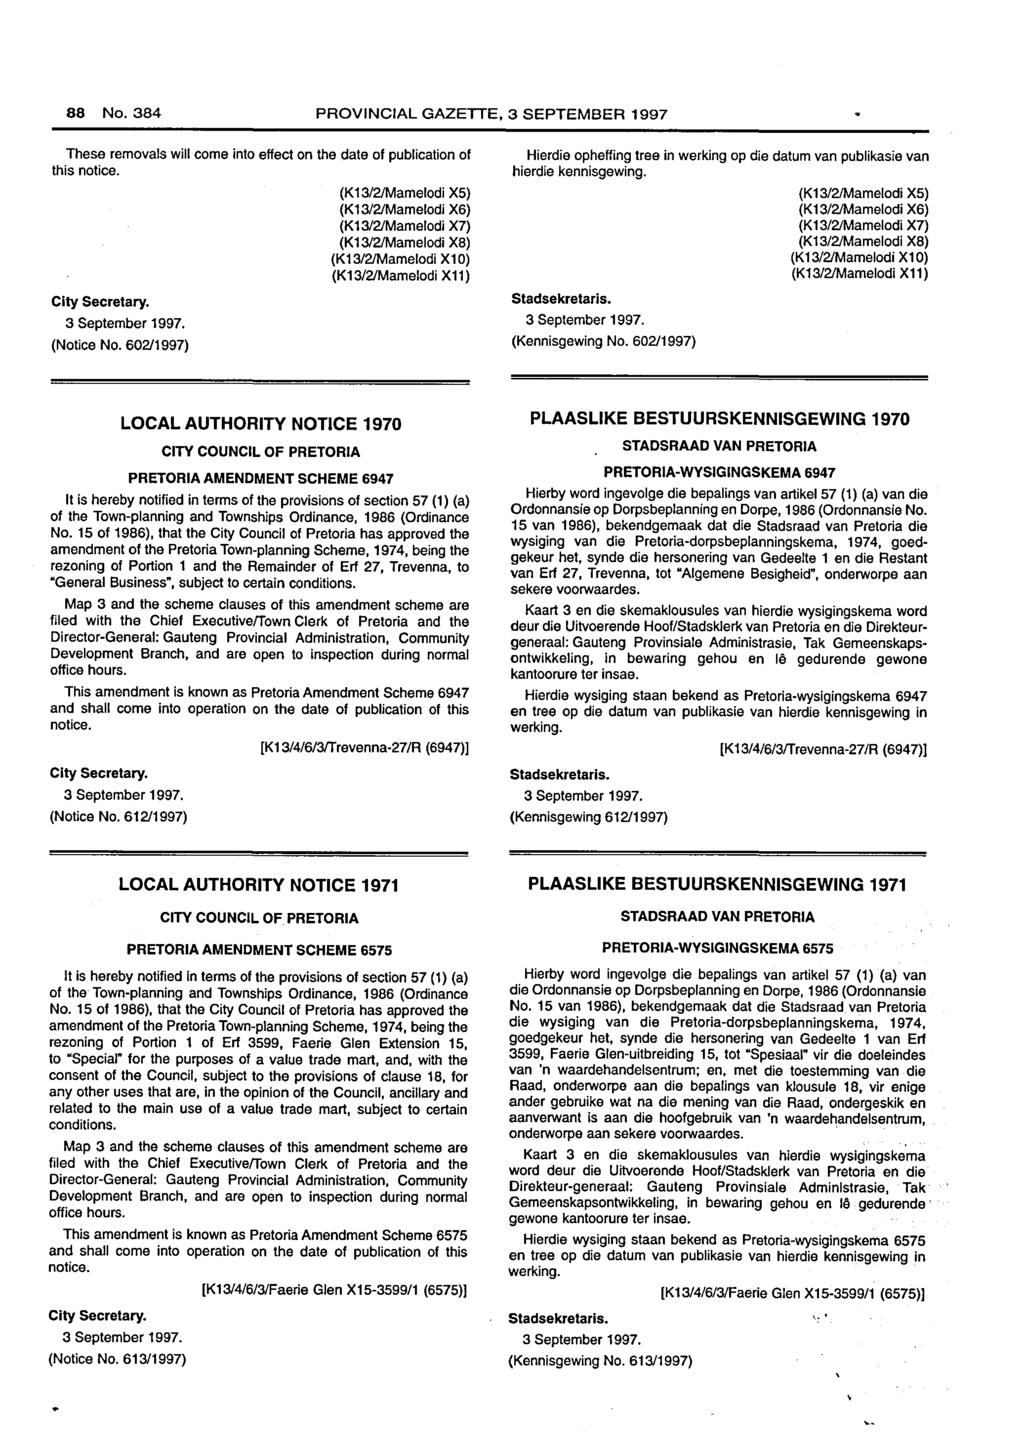 88 No. PROVINCIAL GAZETTE, 3 SEPTEMBER 1997 These removals will come into effect on the date of publication of this notice. City Secretary. (Notice No.